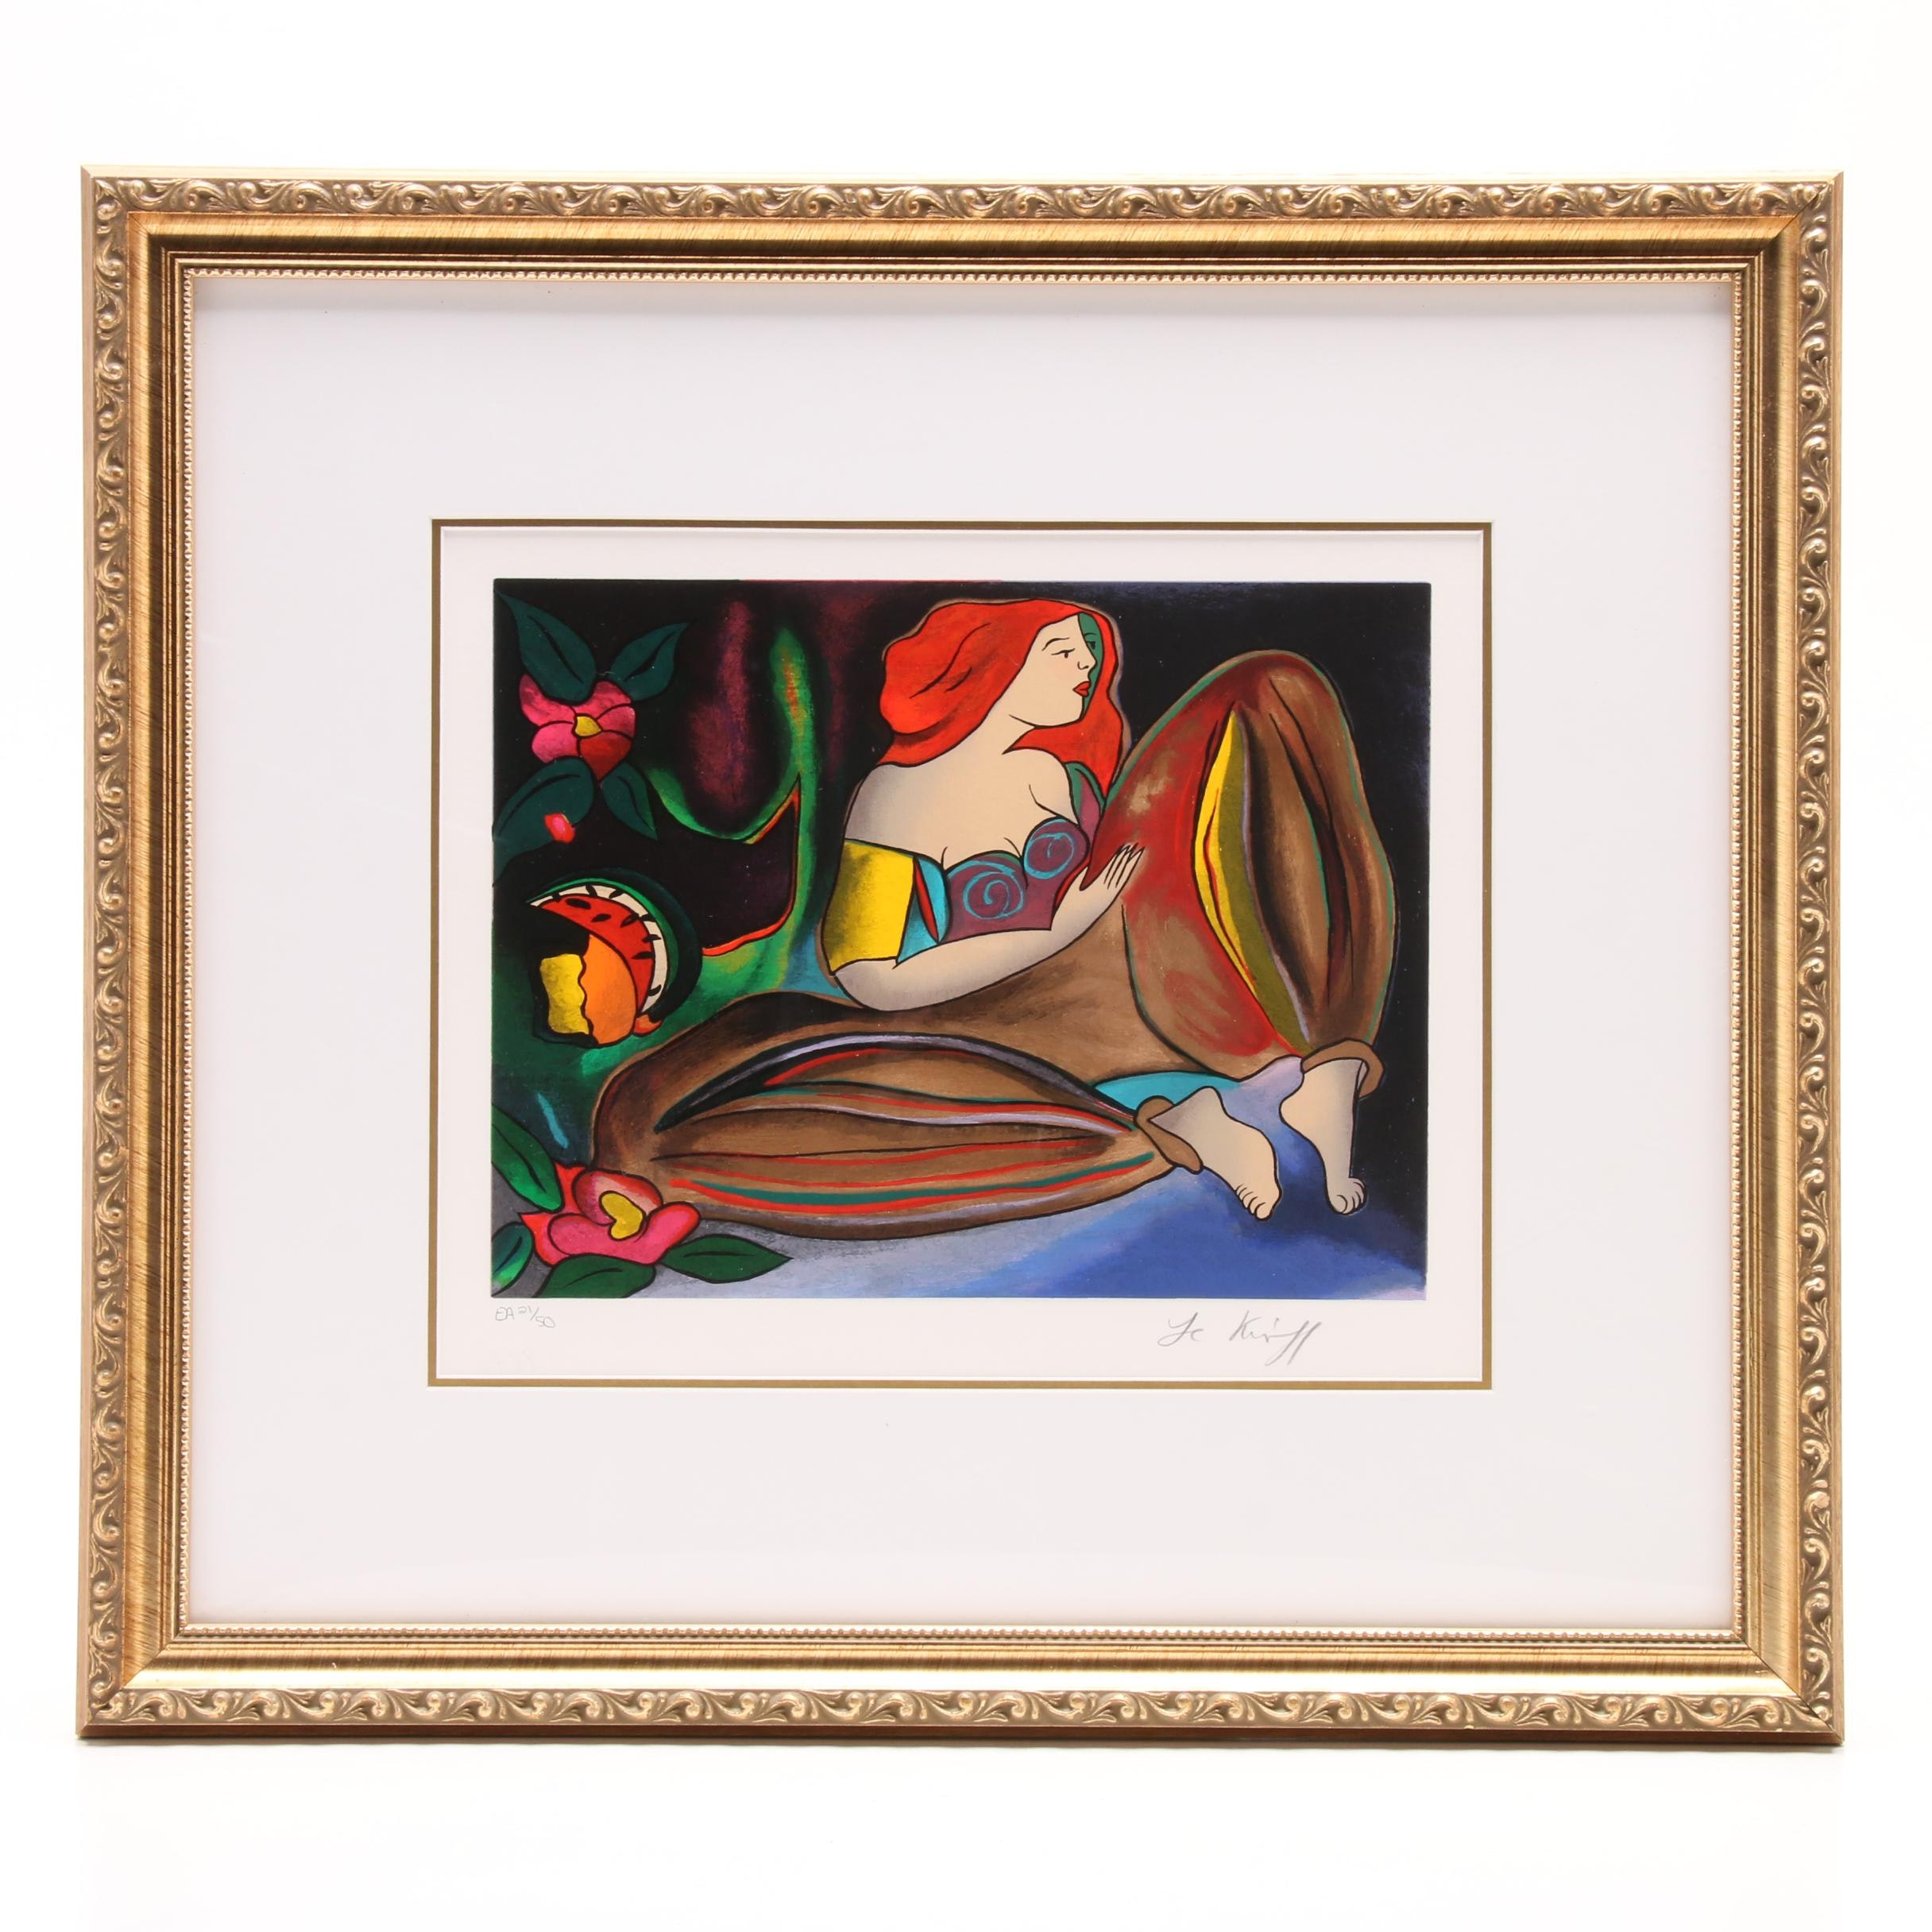 """Linda Le Kinff 2002 Limited Edition Artist's Proof Serigraph """"Nuit Turque"""""""